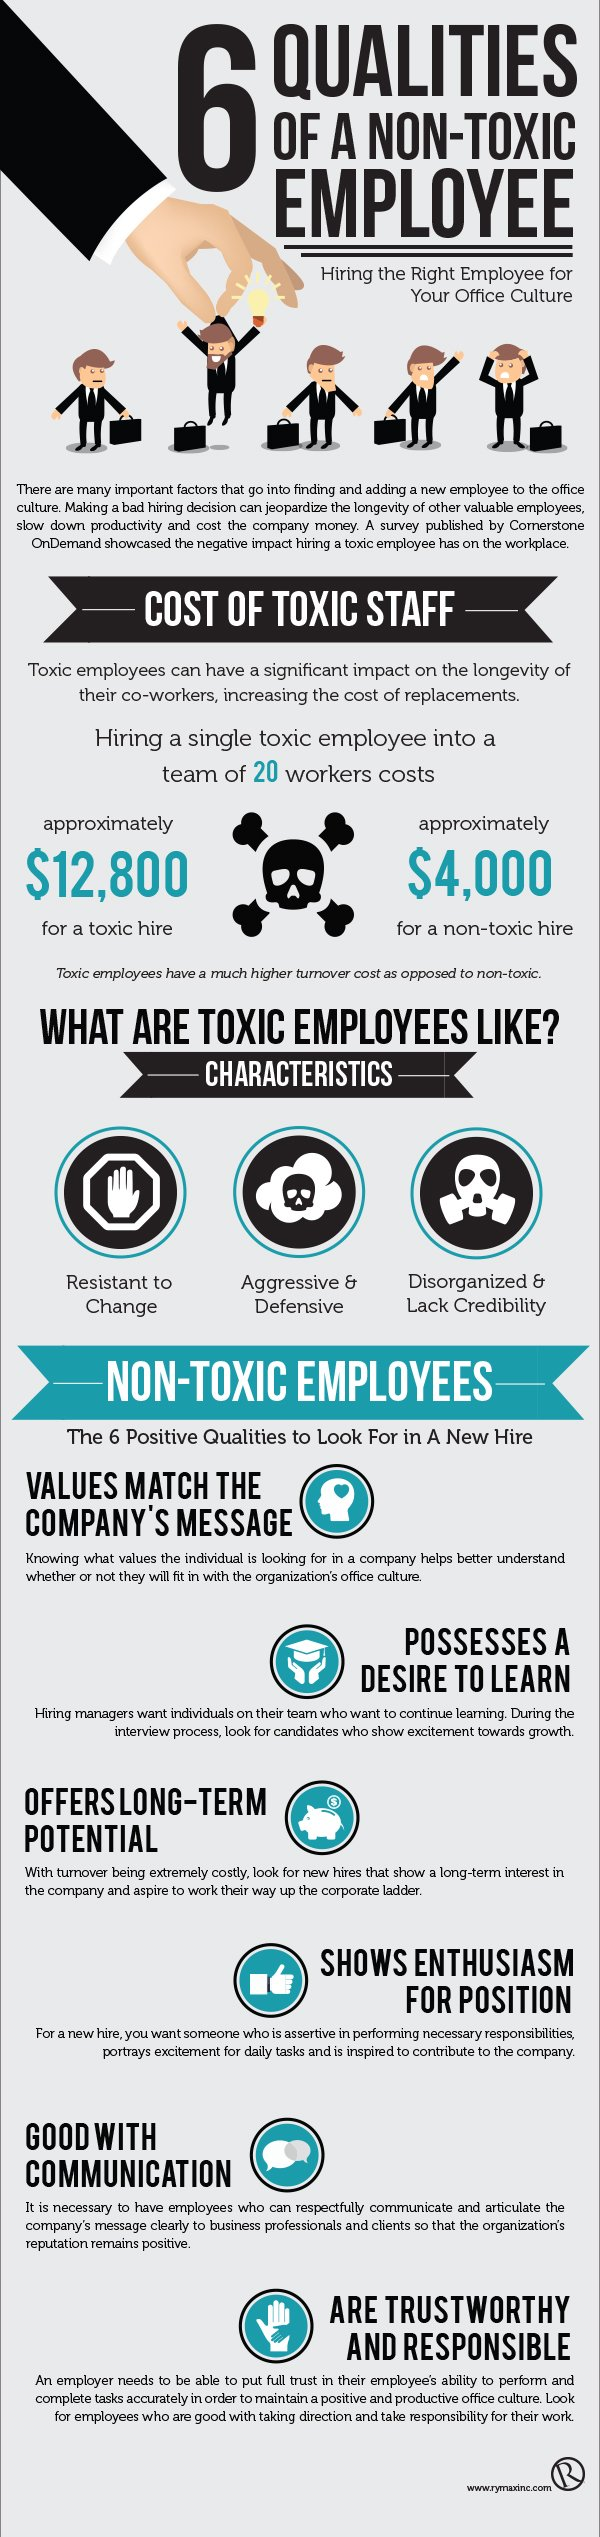 qualities of a non toxic employee infographic rymax 6 qualities of a non toxic employee infographic